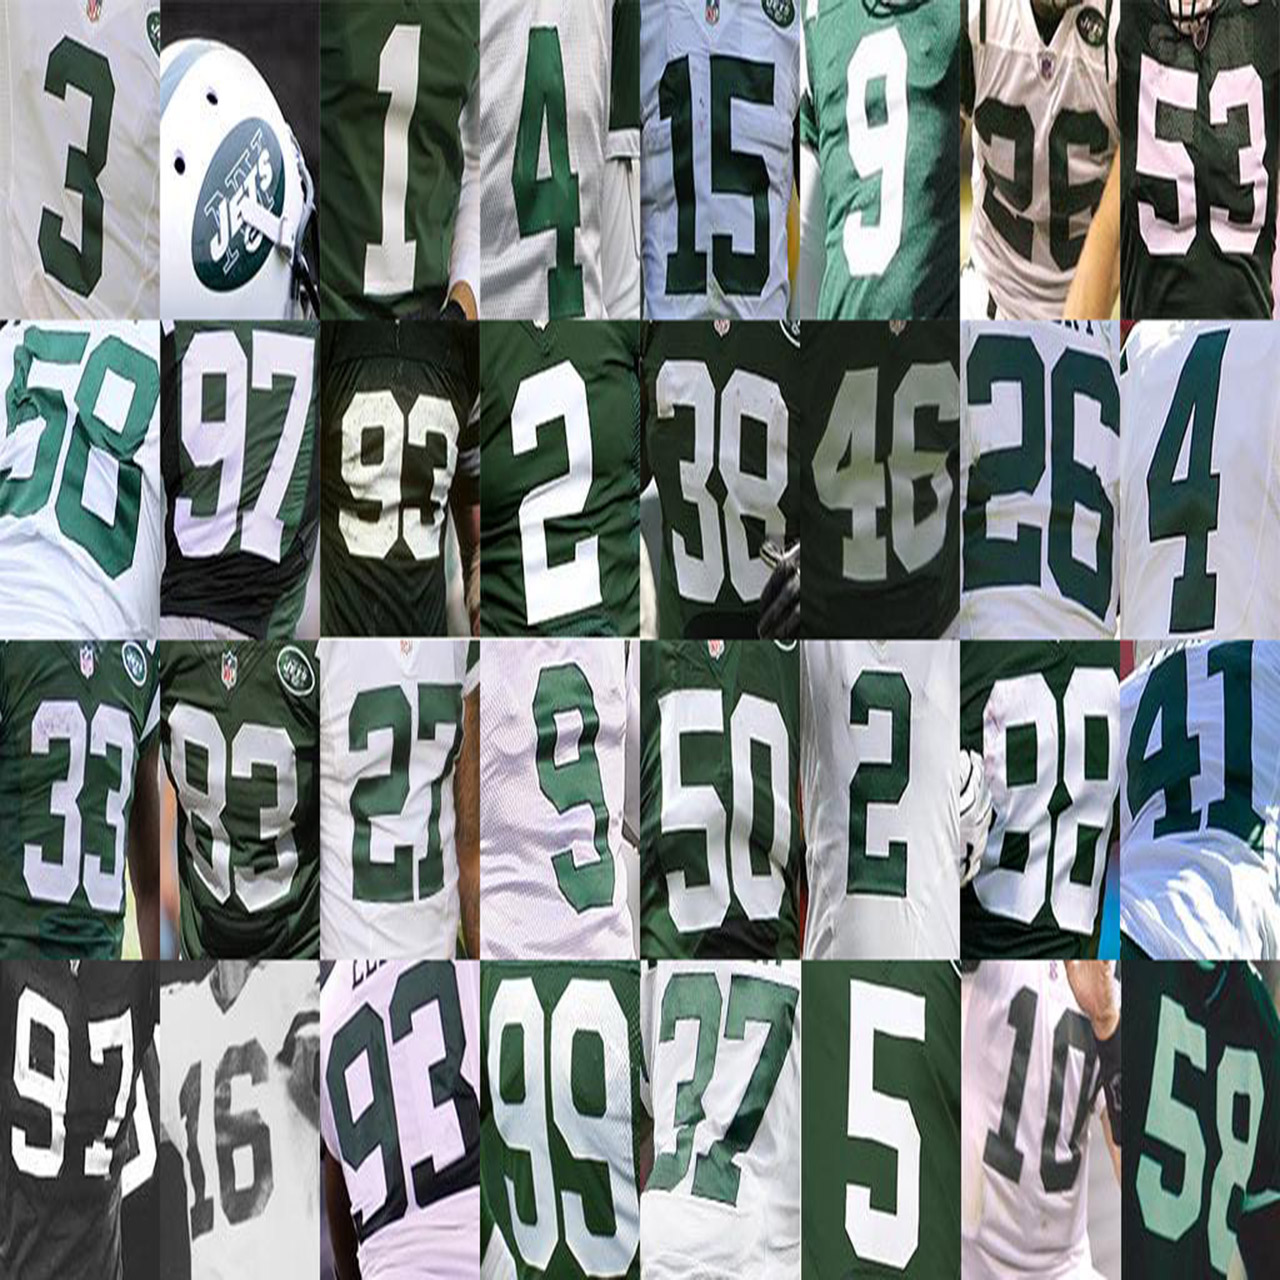 Celebrating Pi Day - New York Jets style